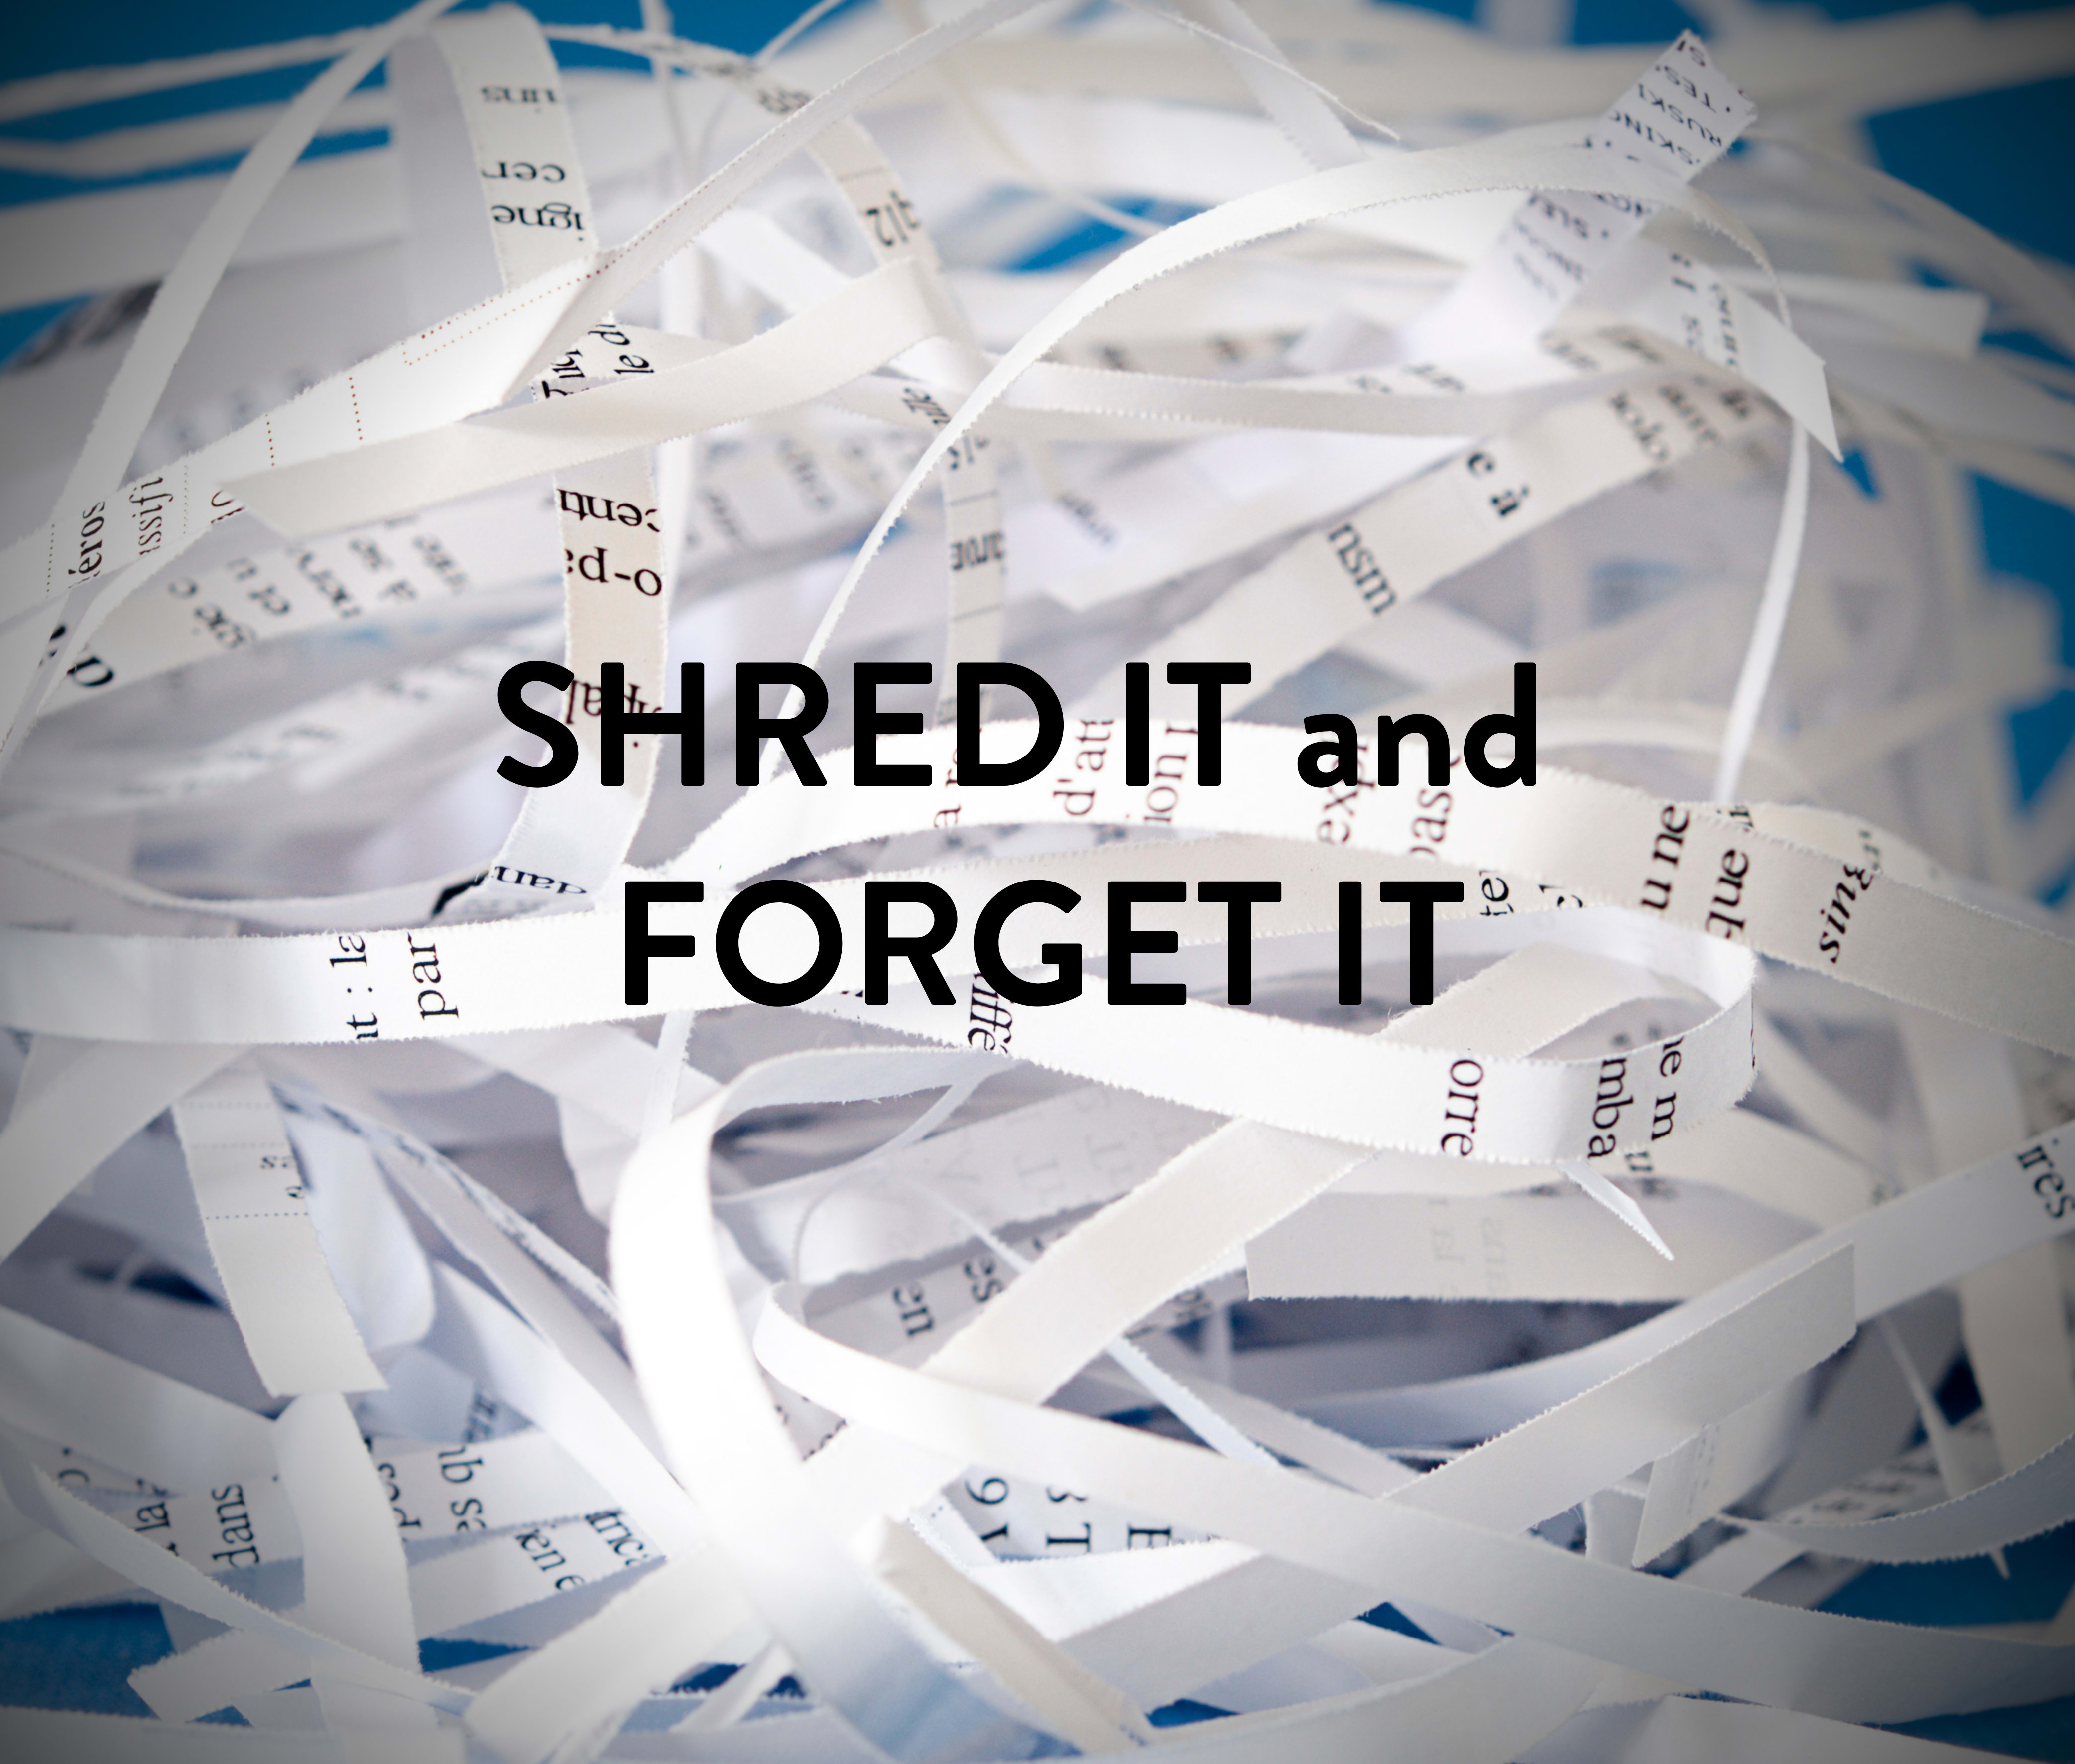 Shred it and Forget it event at Anthology of Blue Ash in Blue Ash, Ohio